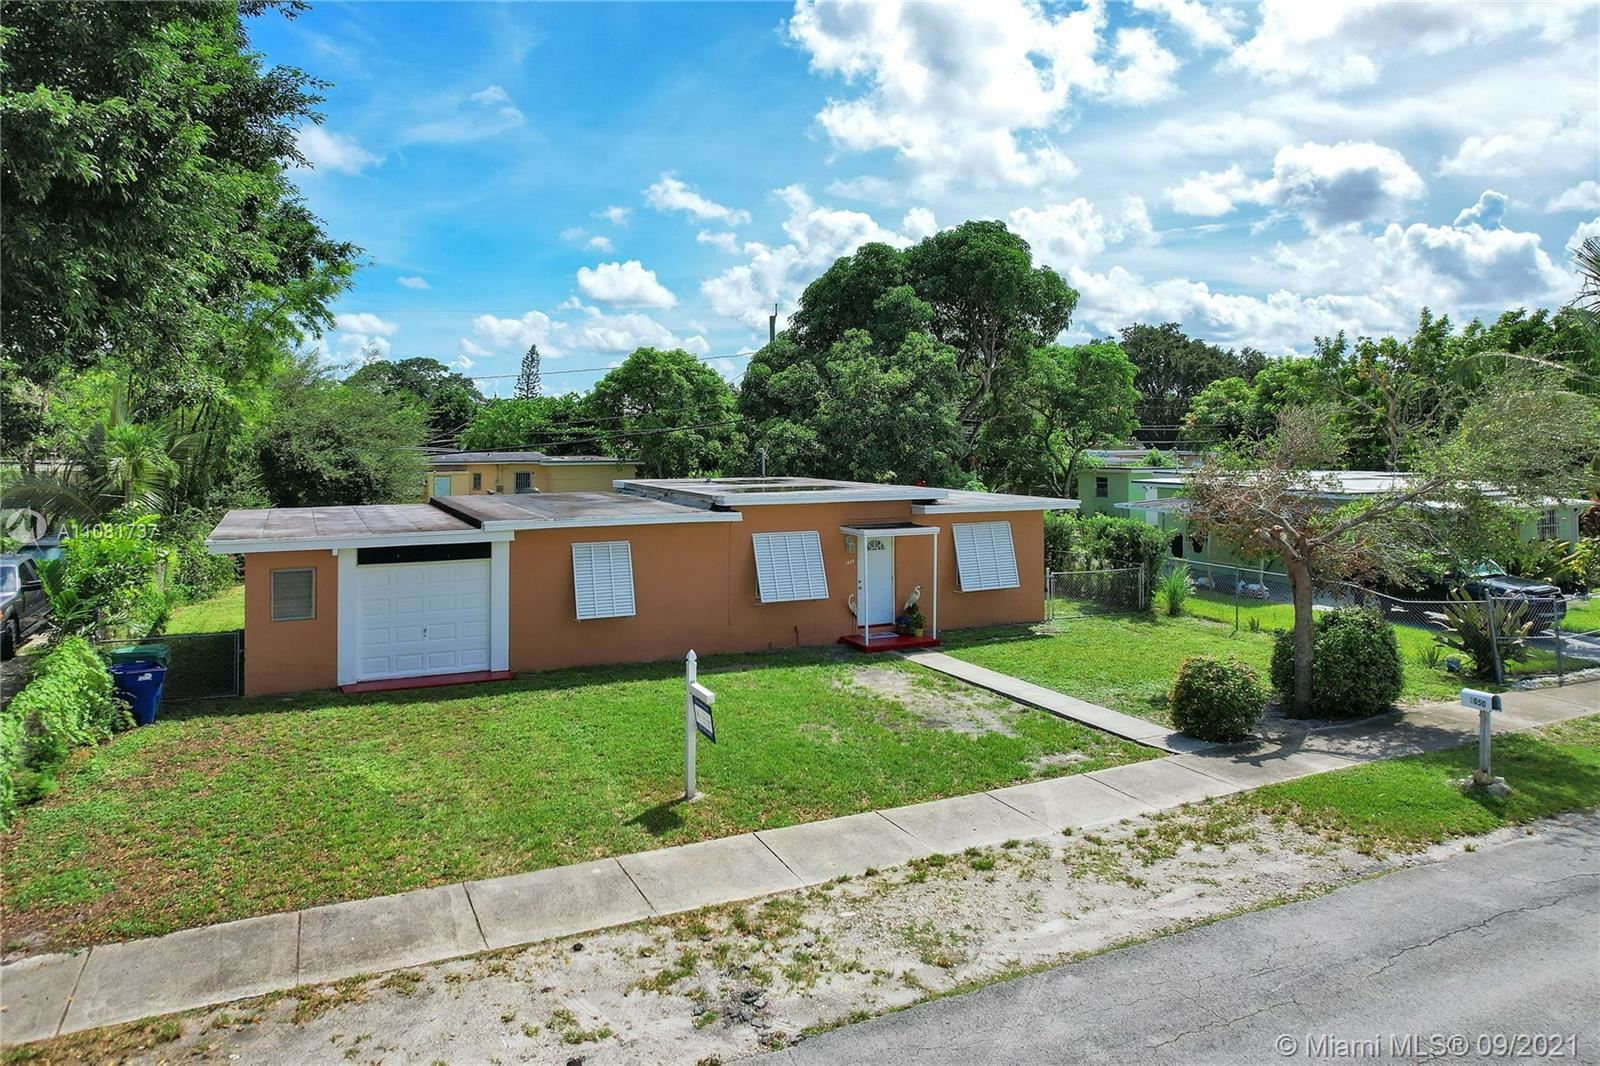 1050 NW 142nd St, Miami, FL 33168 - #: A11081737